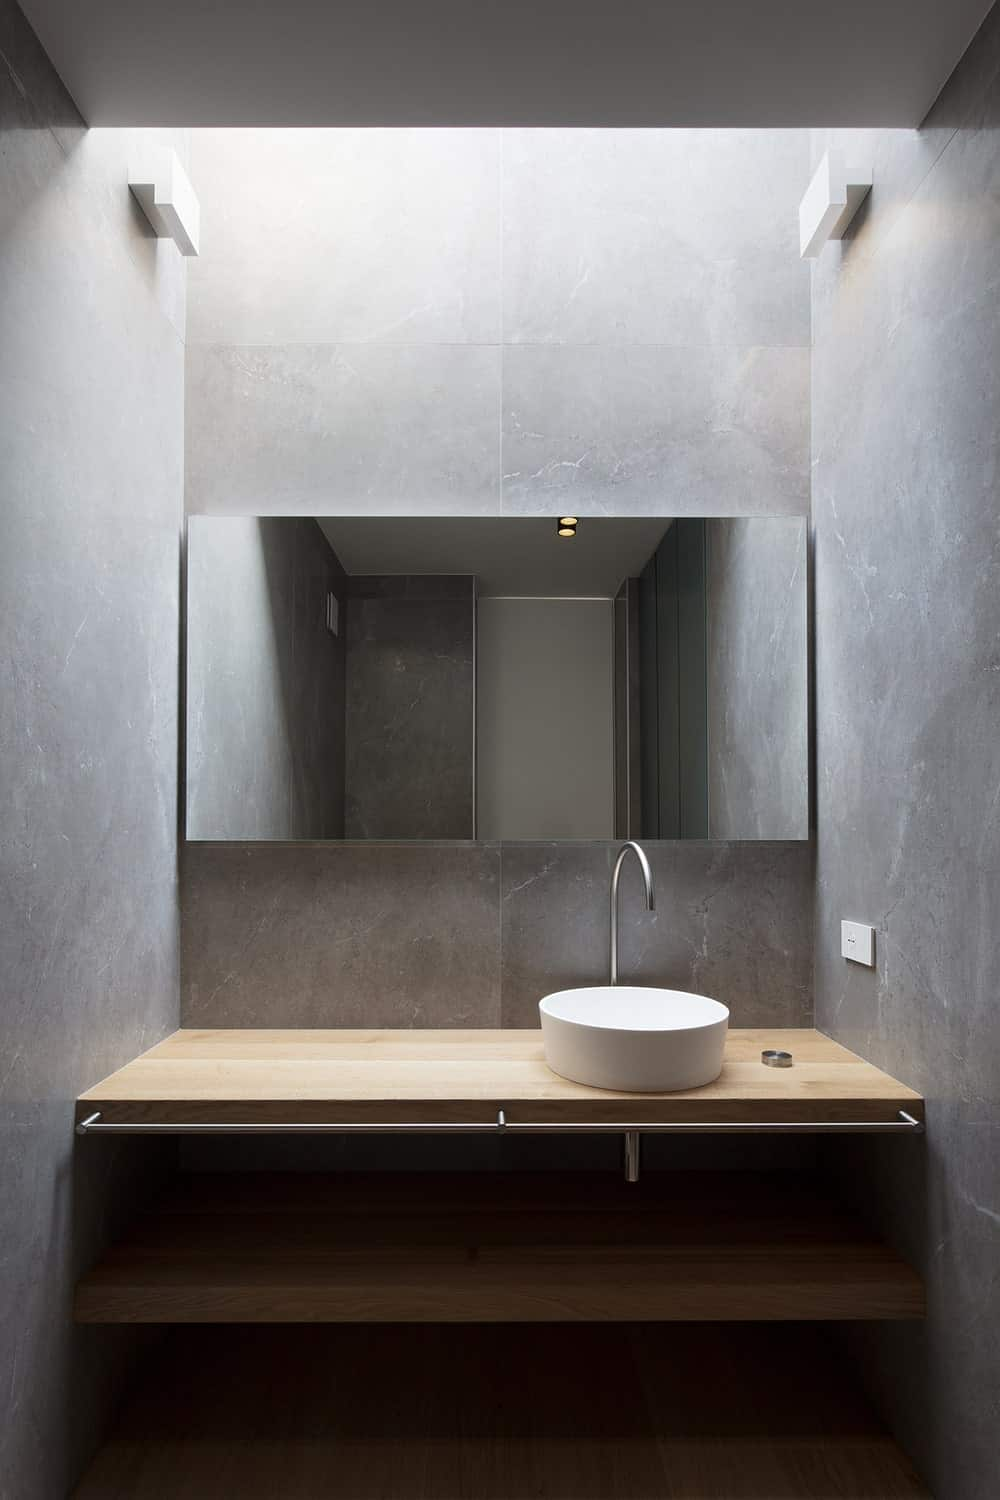 This is the simple wooden vanity of the bathroom with a small circular sink and wooden shelves below the mirror.